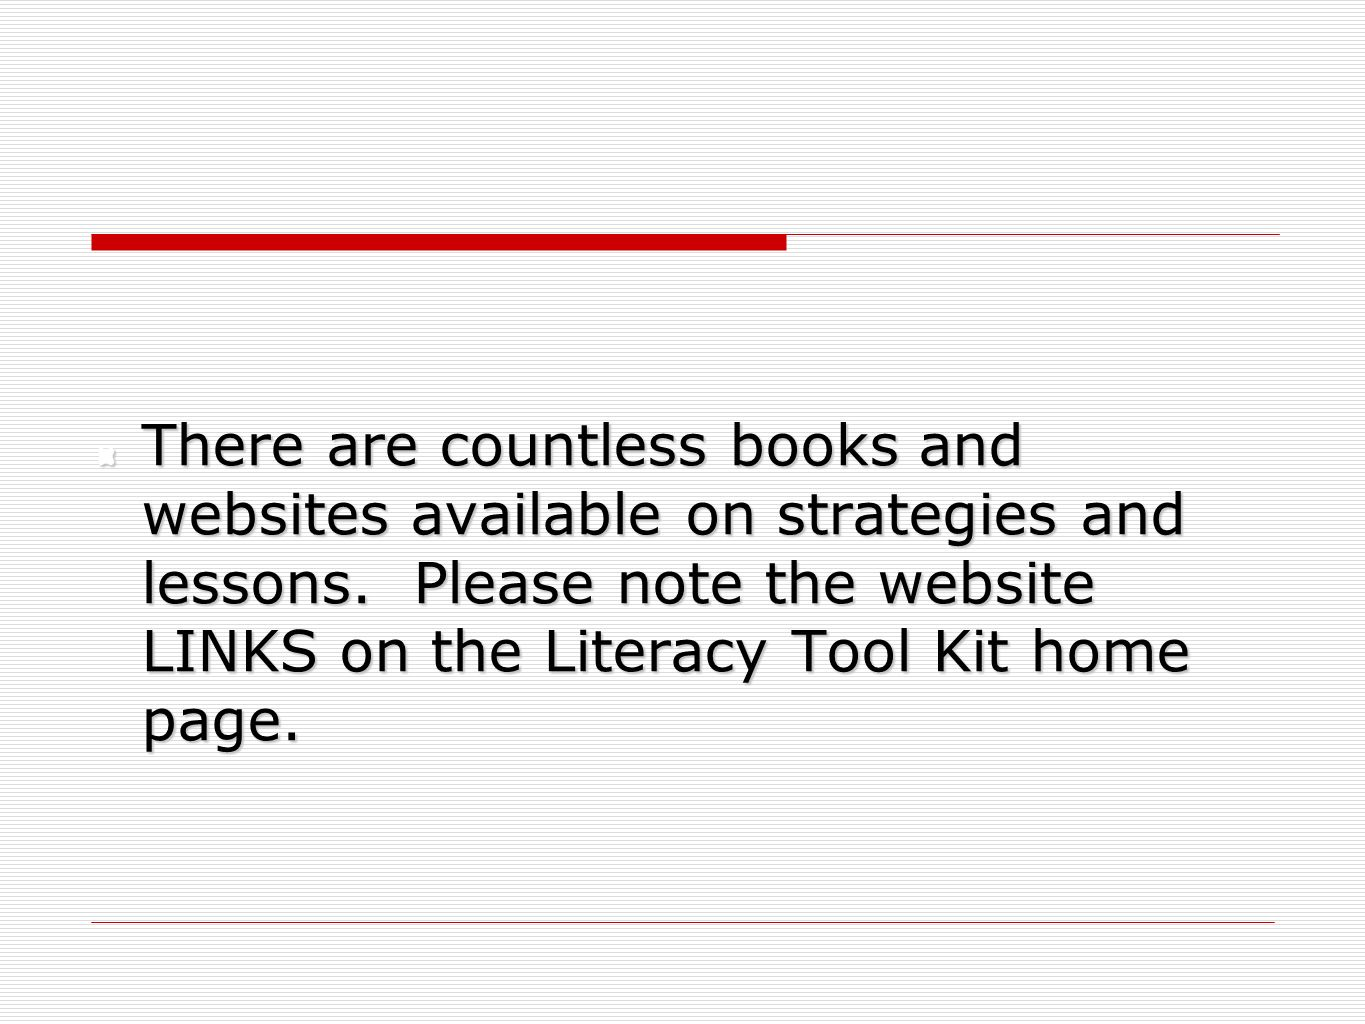 There are countless books and websites available on strategies and lessons.